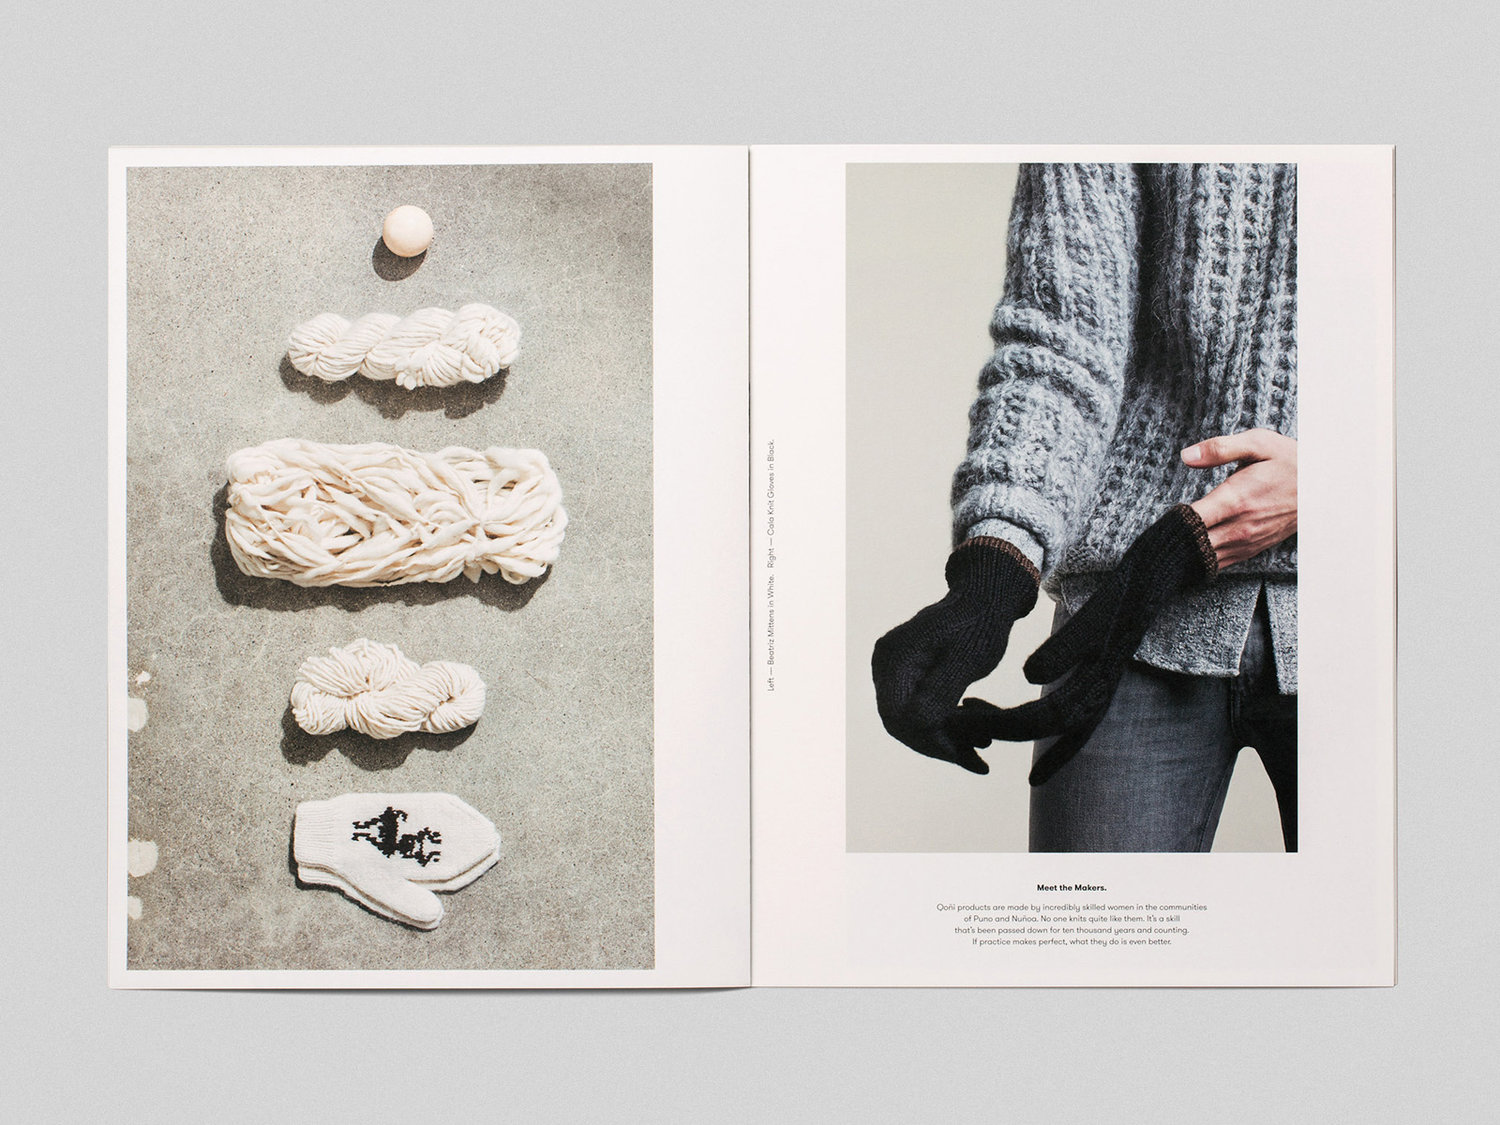 Lookbook and art direction by Toronto-based Leo Burnett Design for Peruvian handmade knitwear brand Qoñi